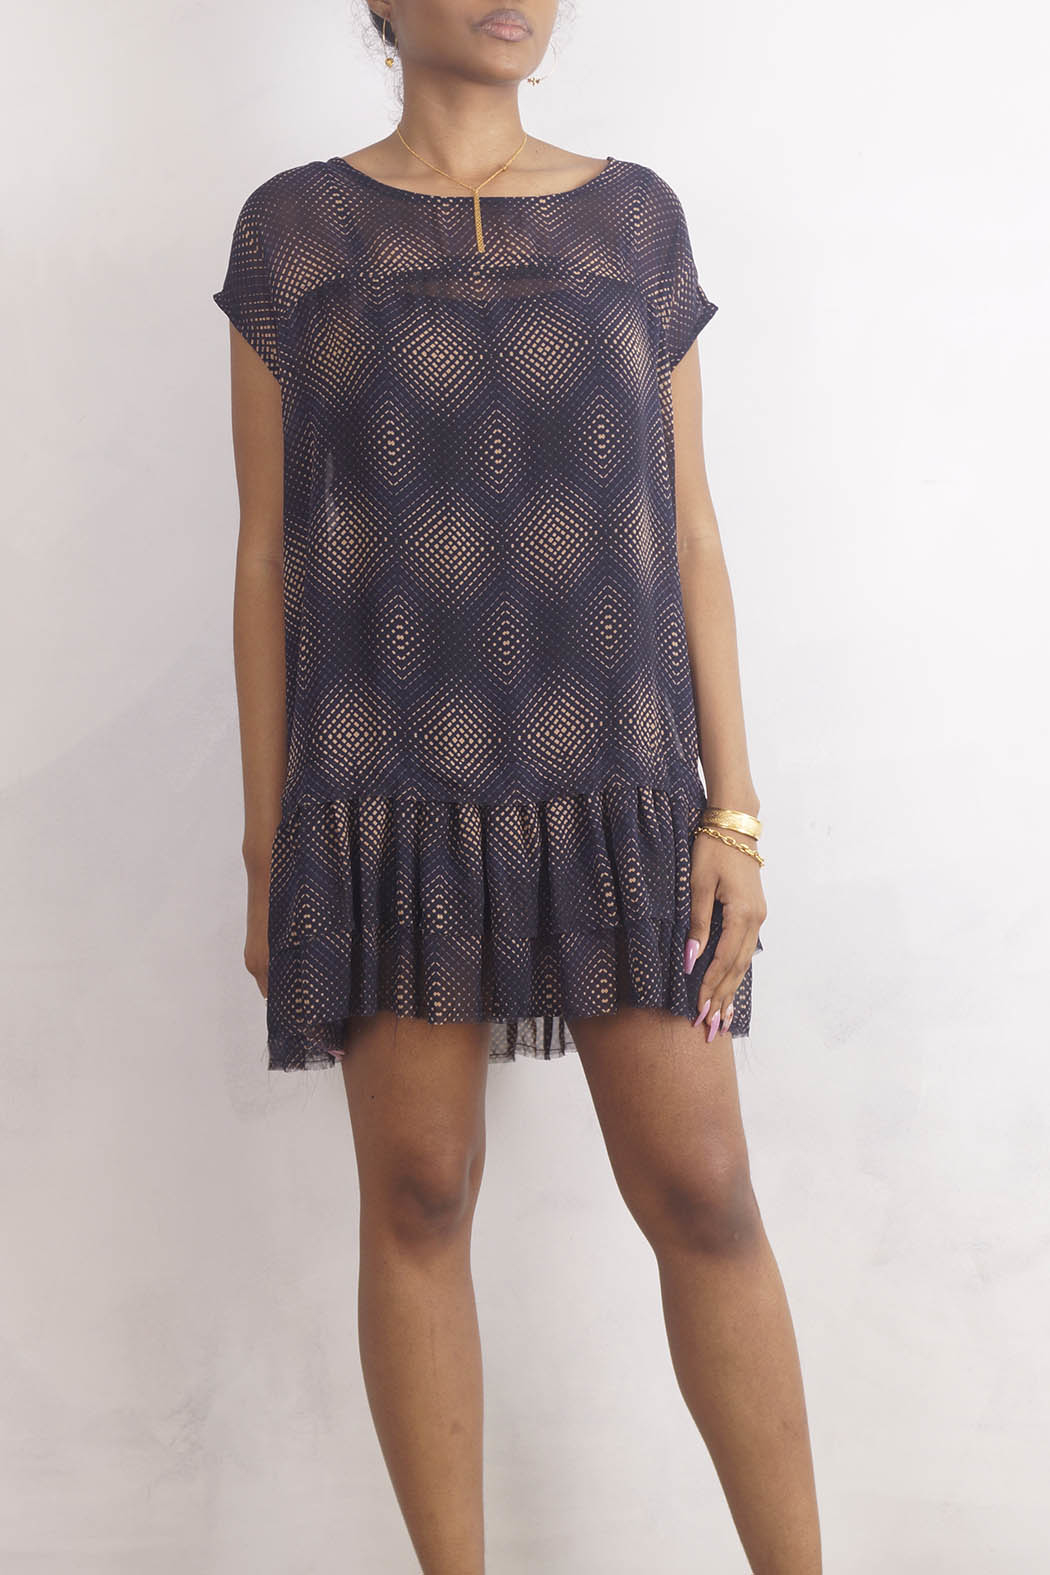 NU New York GEONYX DRESS - Front Cropped Image